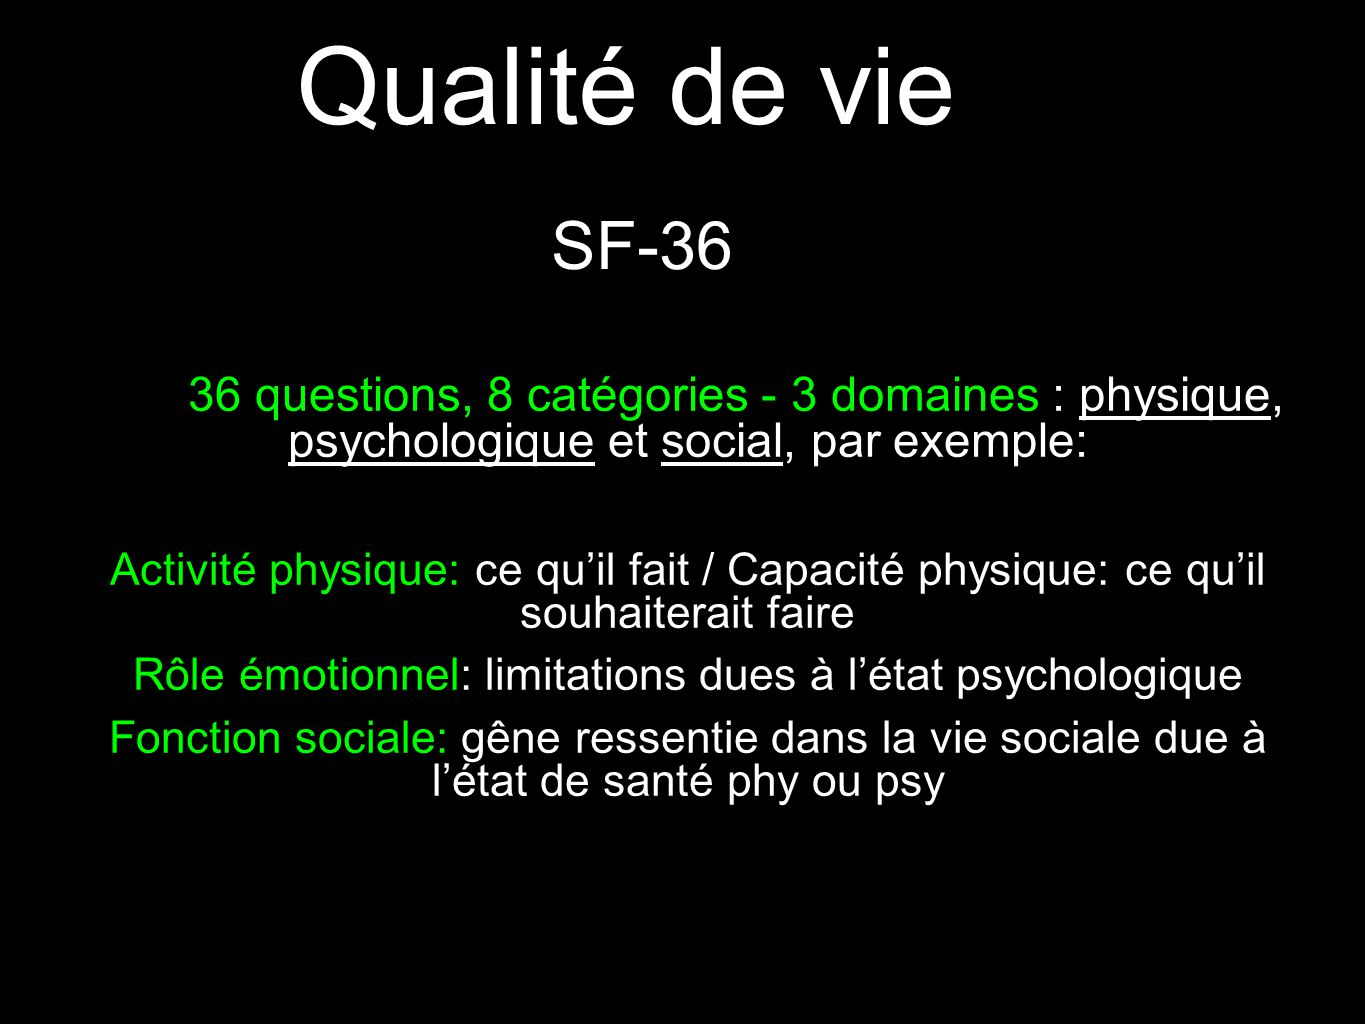 Rôle émotionnel: limitations dues à l'état psychologique